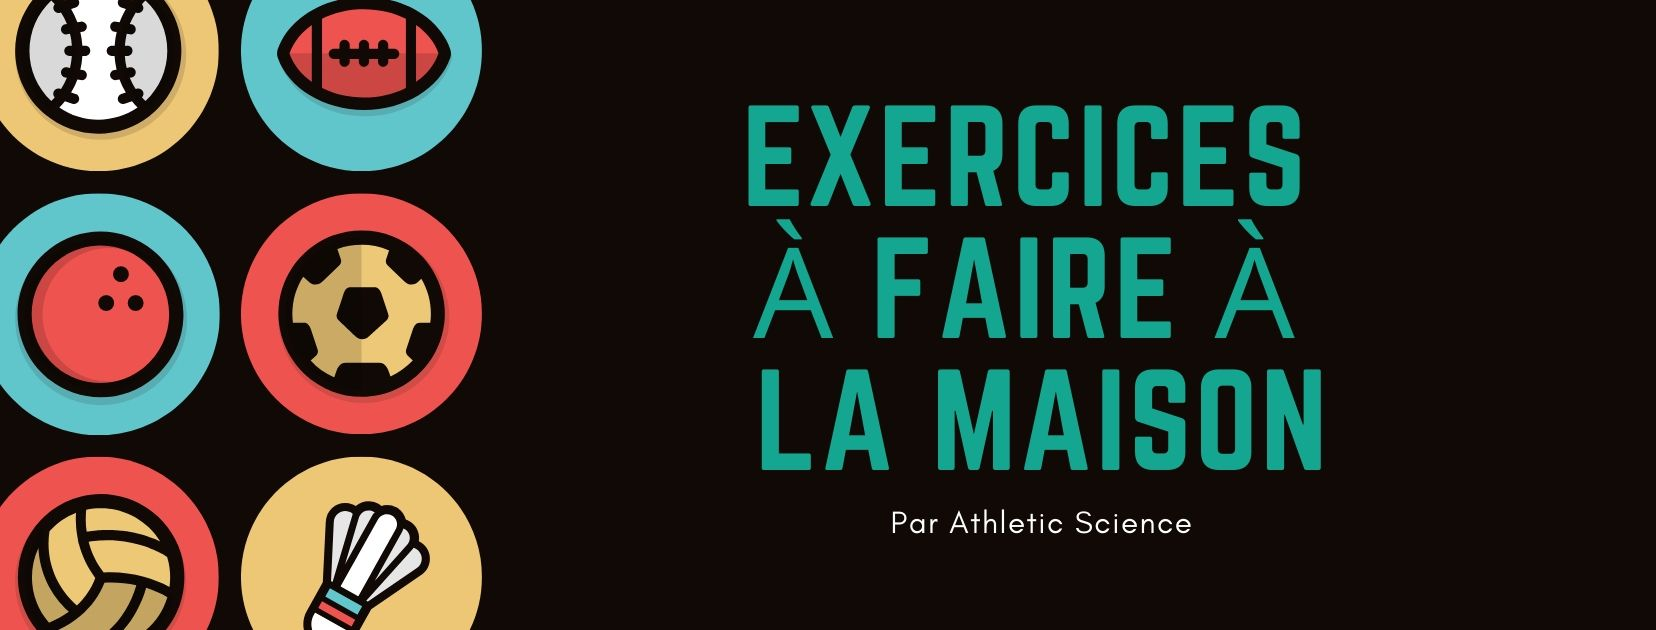 Exercices A faire a la maison